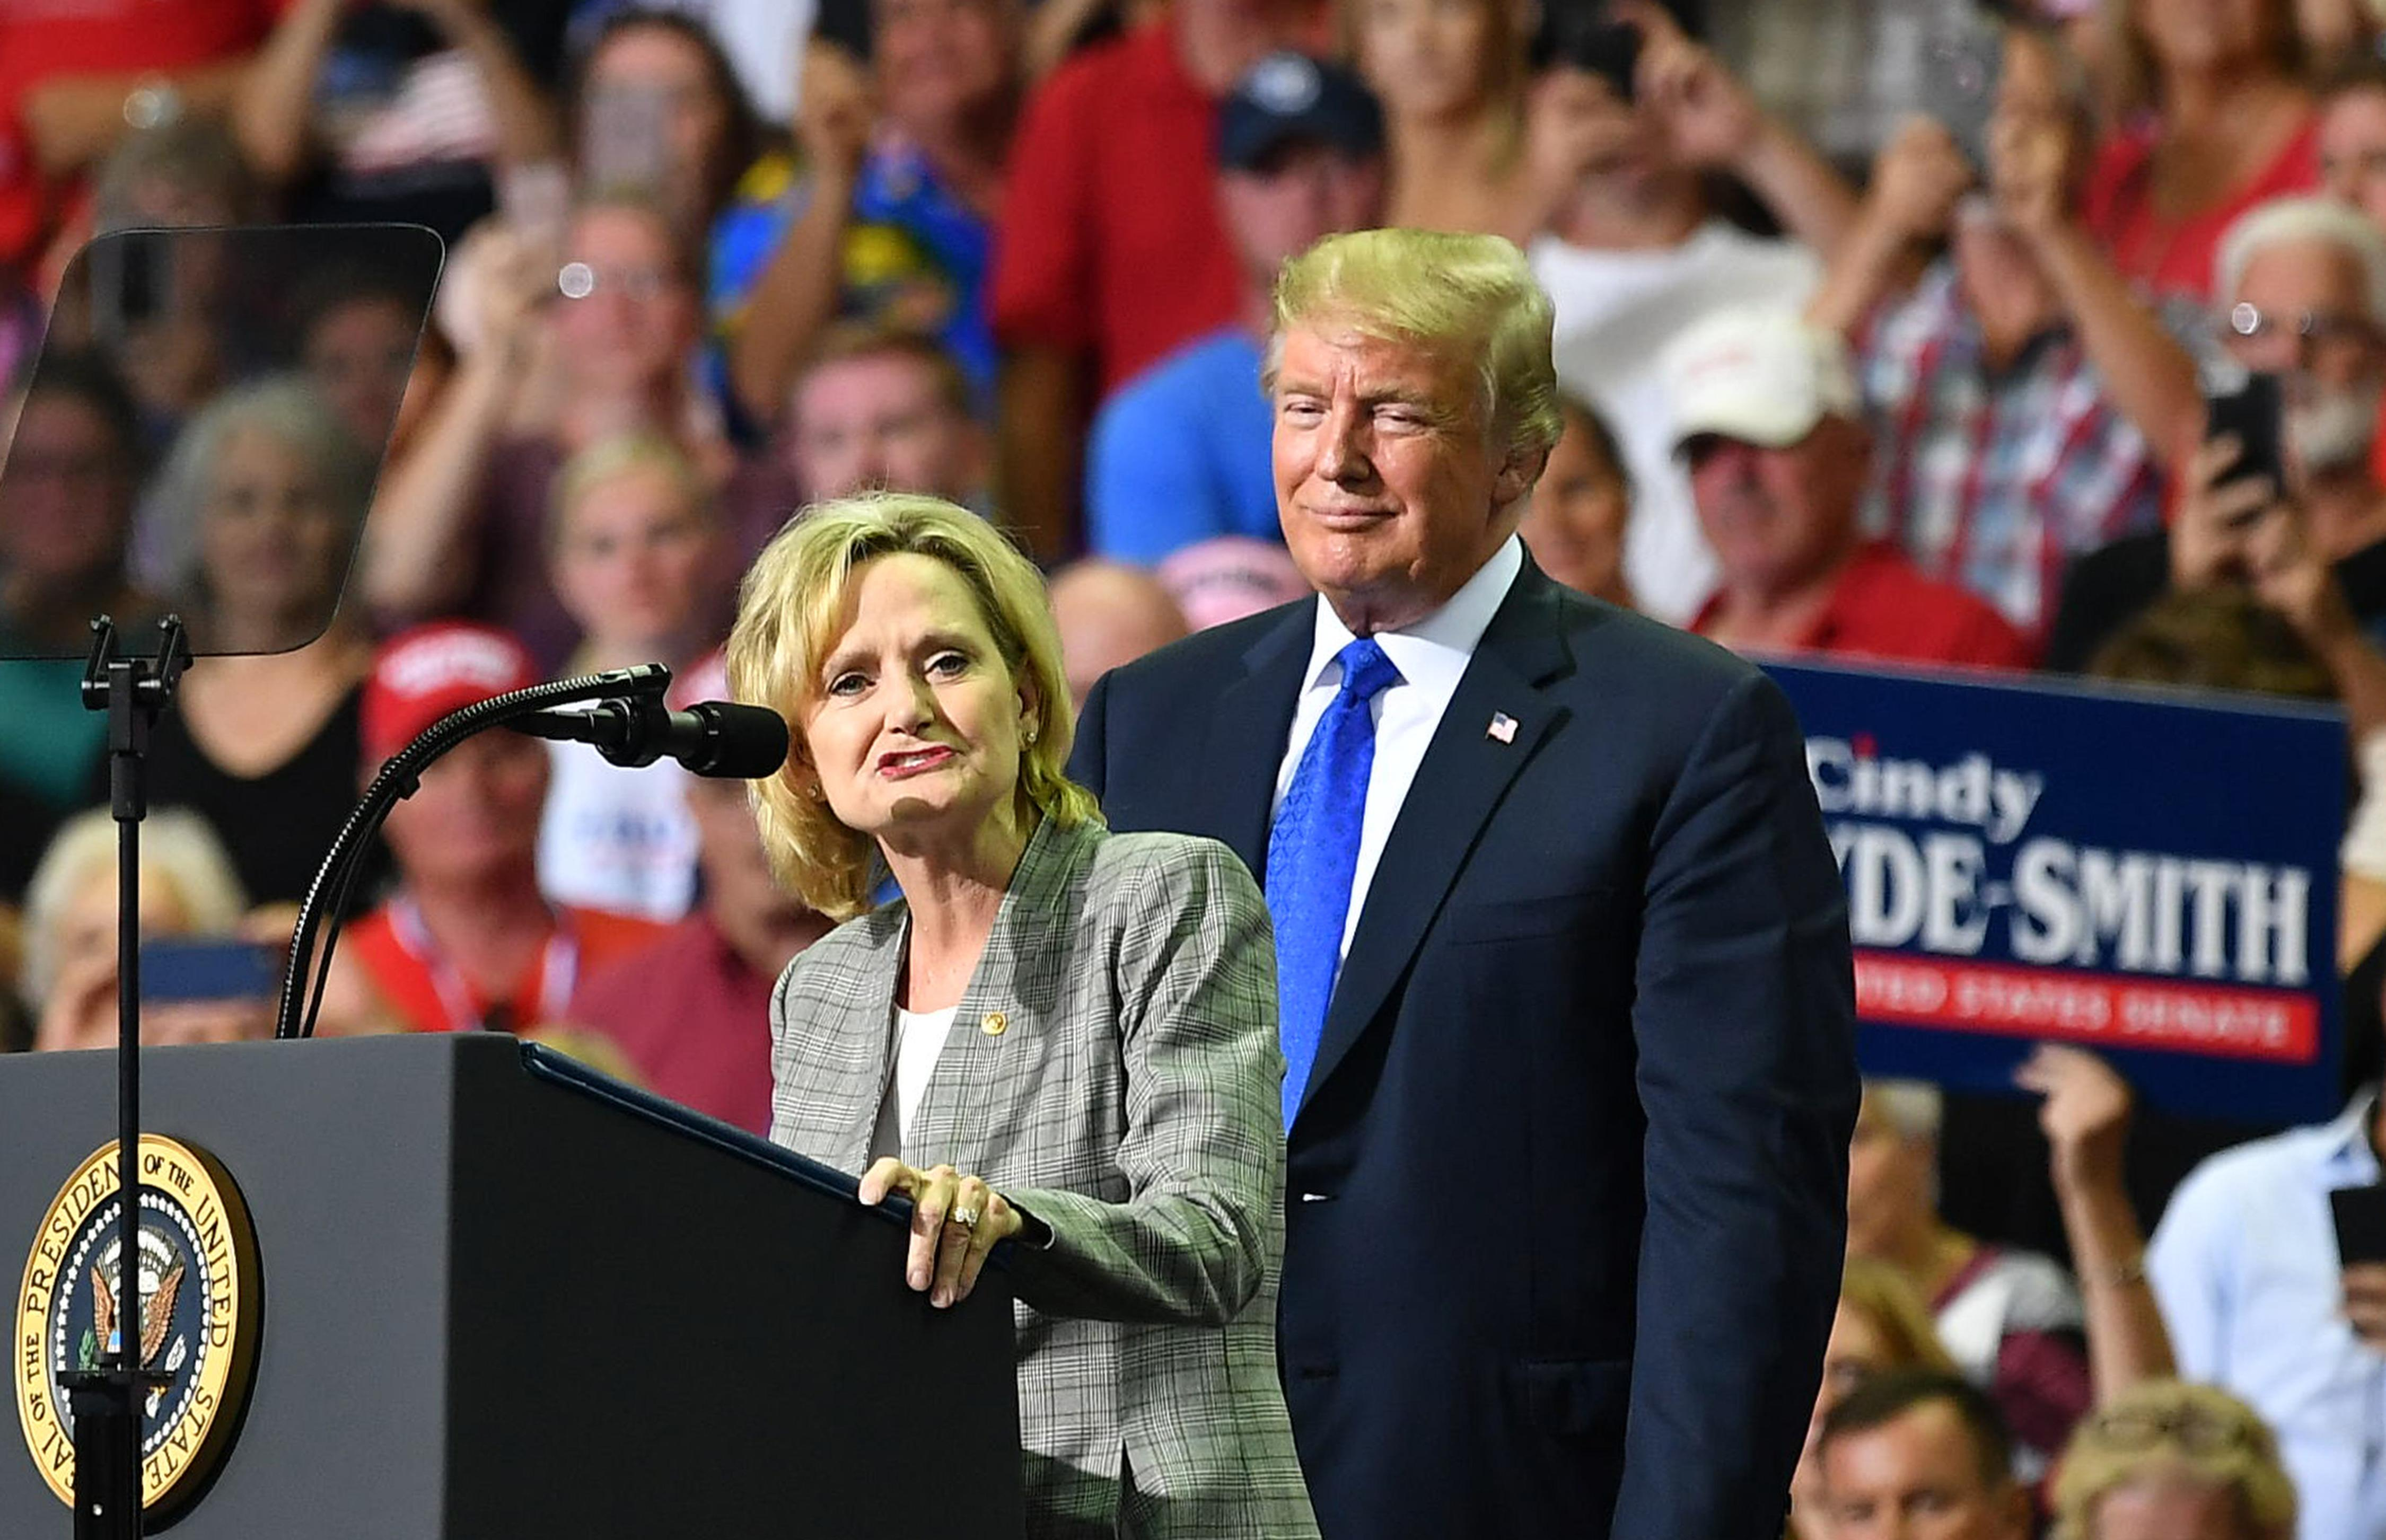 Major League Baseball  requests return of $5,000 donation to Mississippi Senator Cindy Hyde-Smith